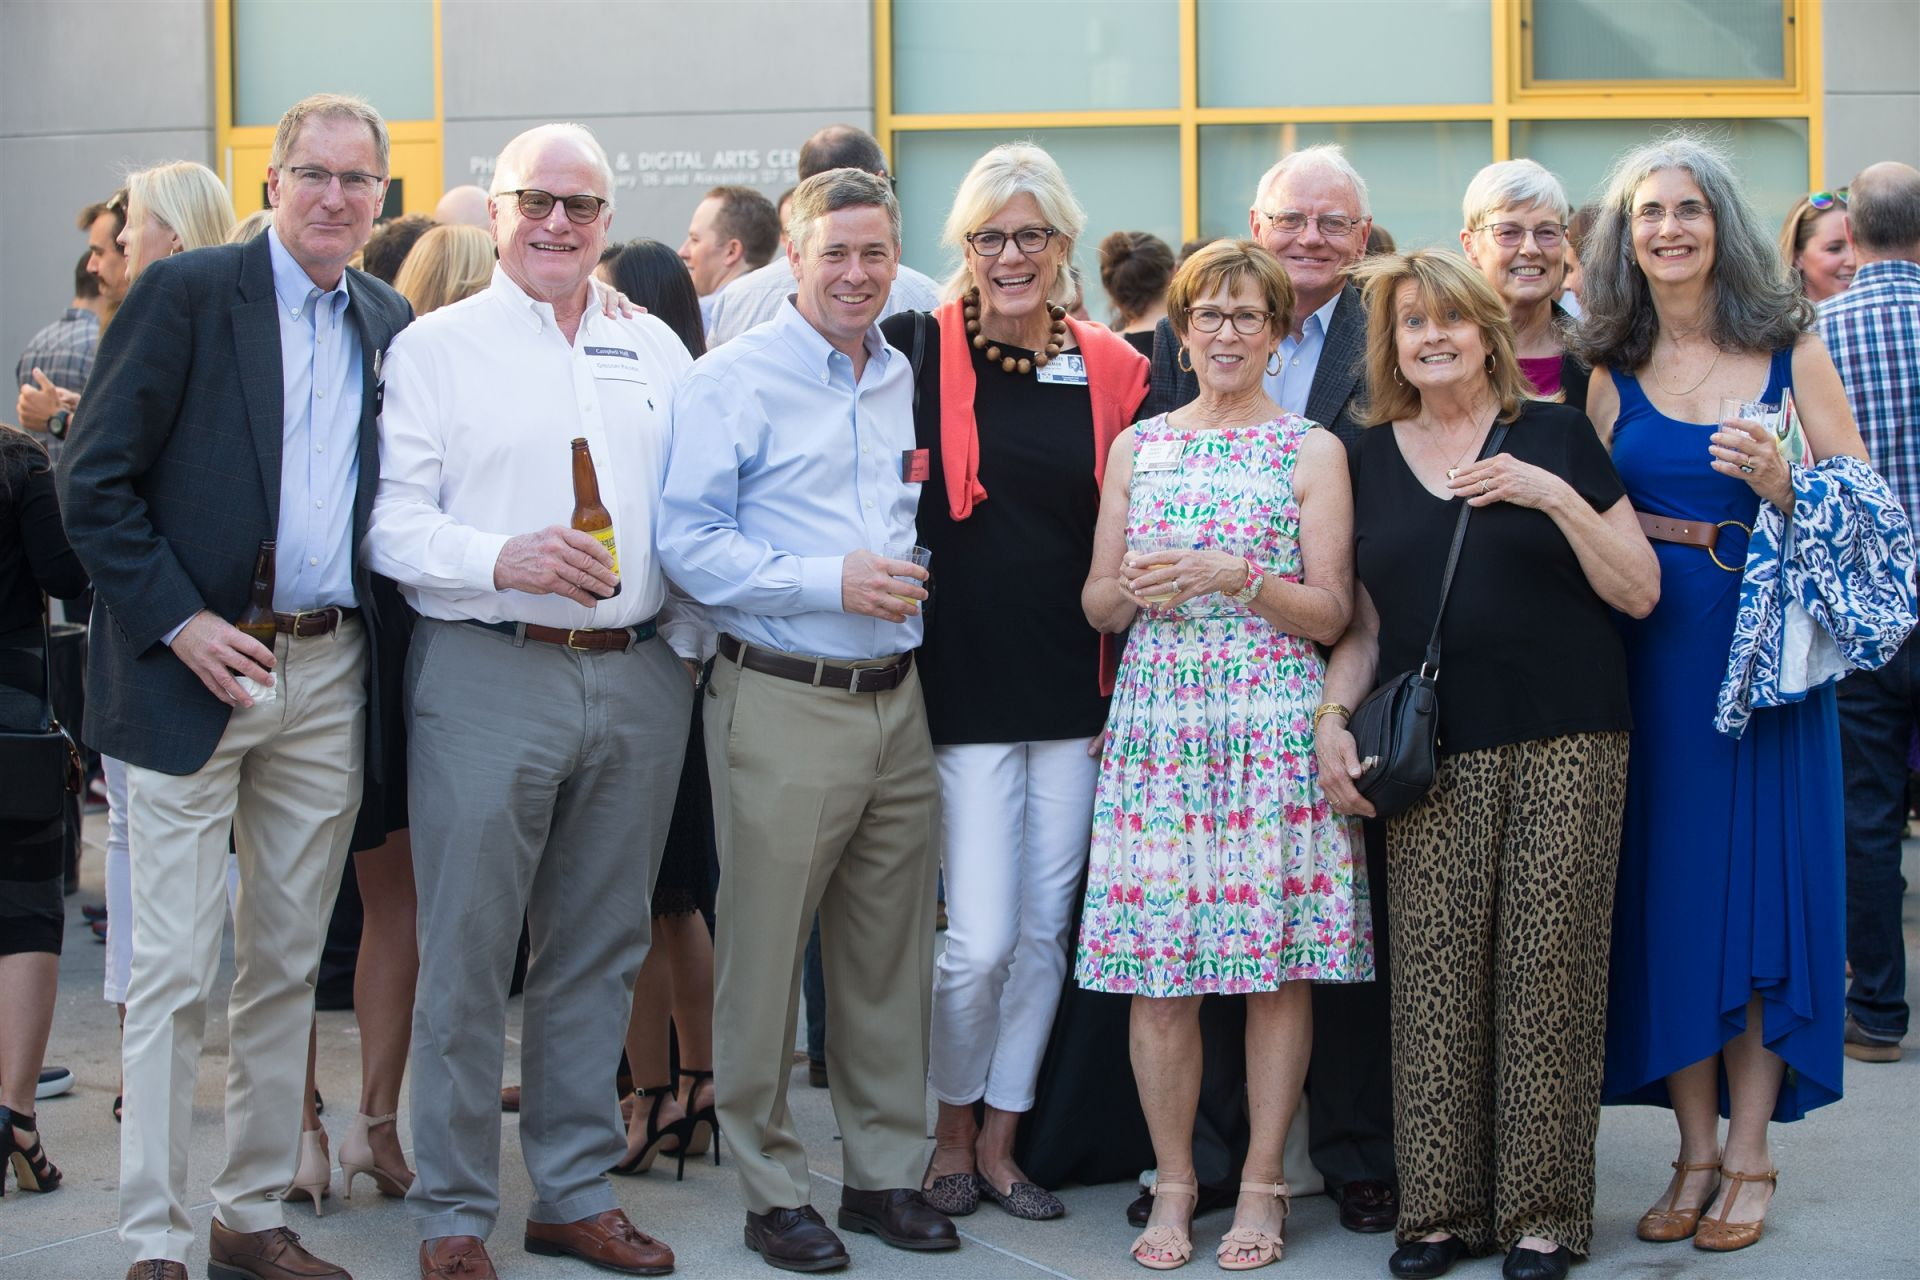 In June, alumni return to CH to celebrate their milestone reunion, connect with friends and teachers, enjoy dinner together, and tour The Arts & Education Center.